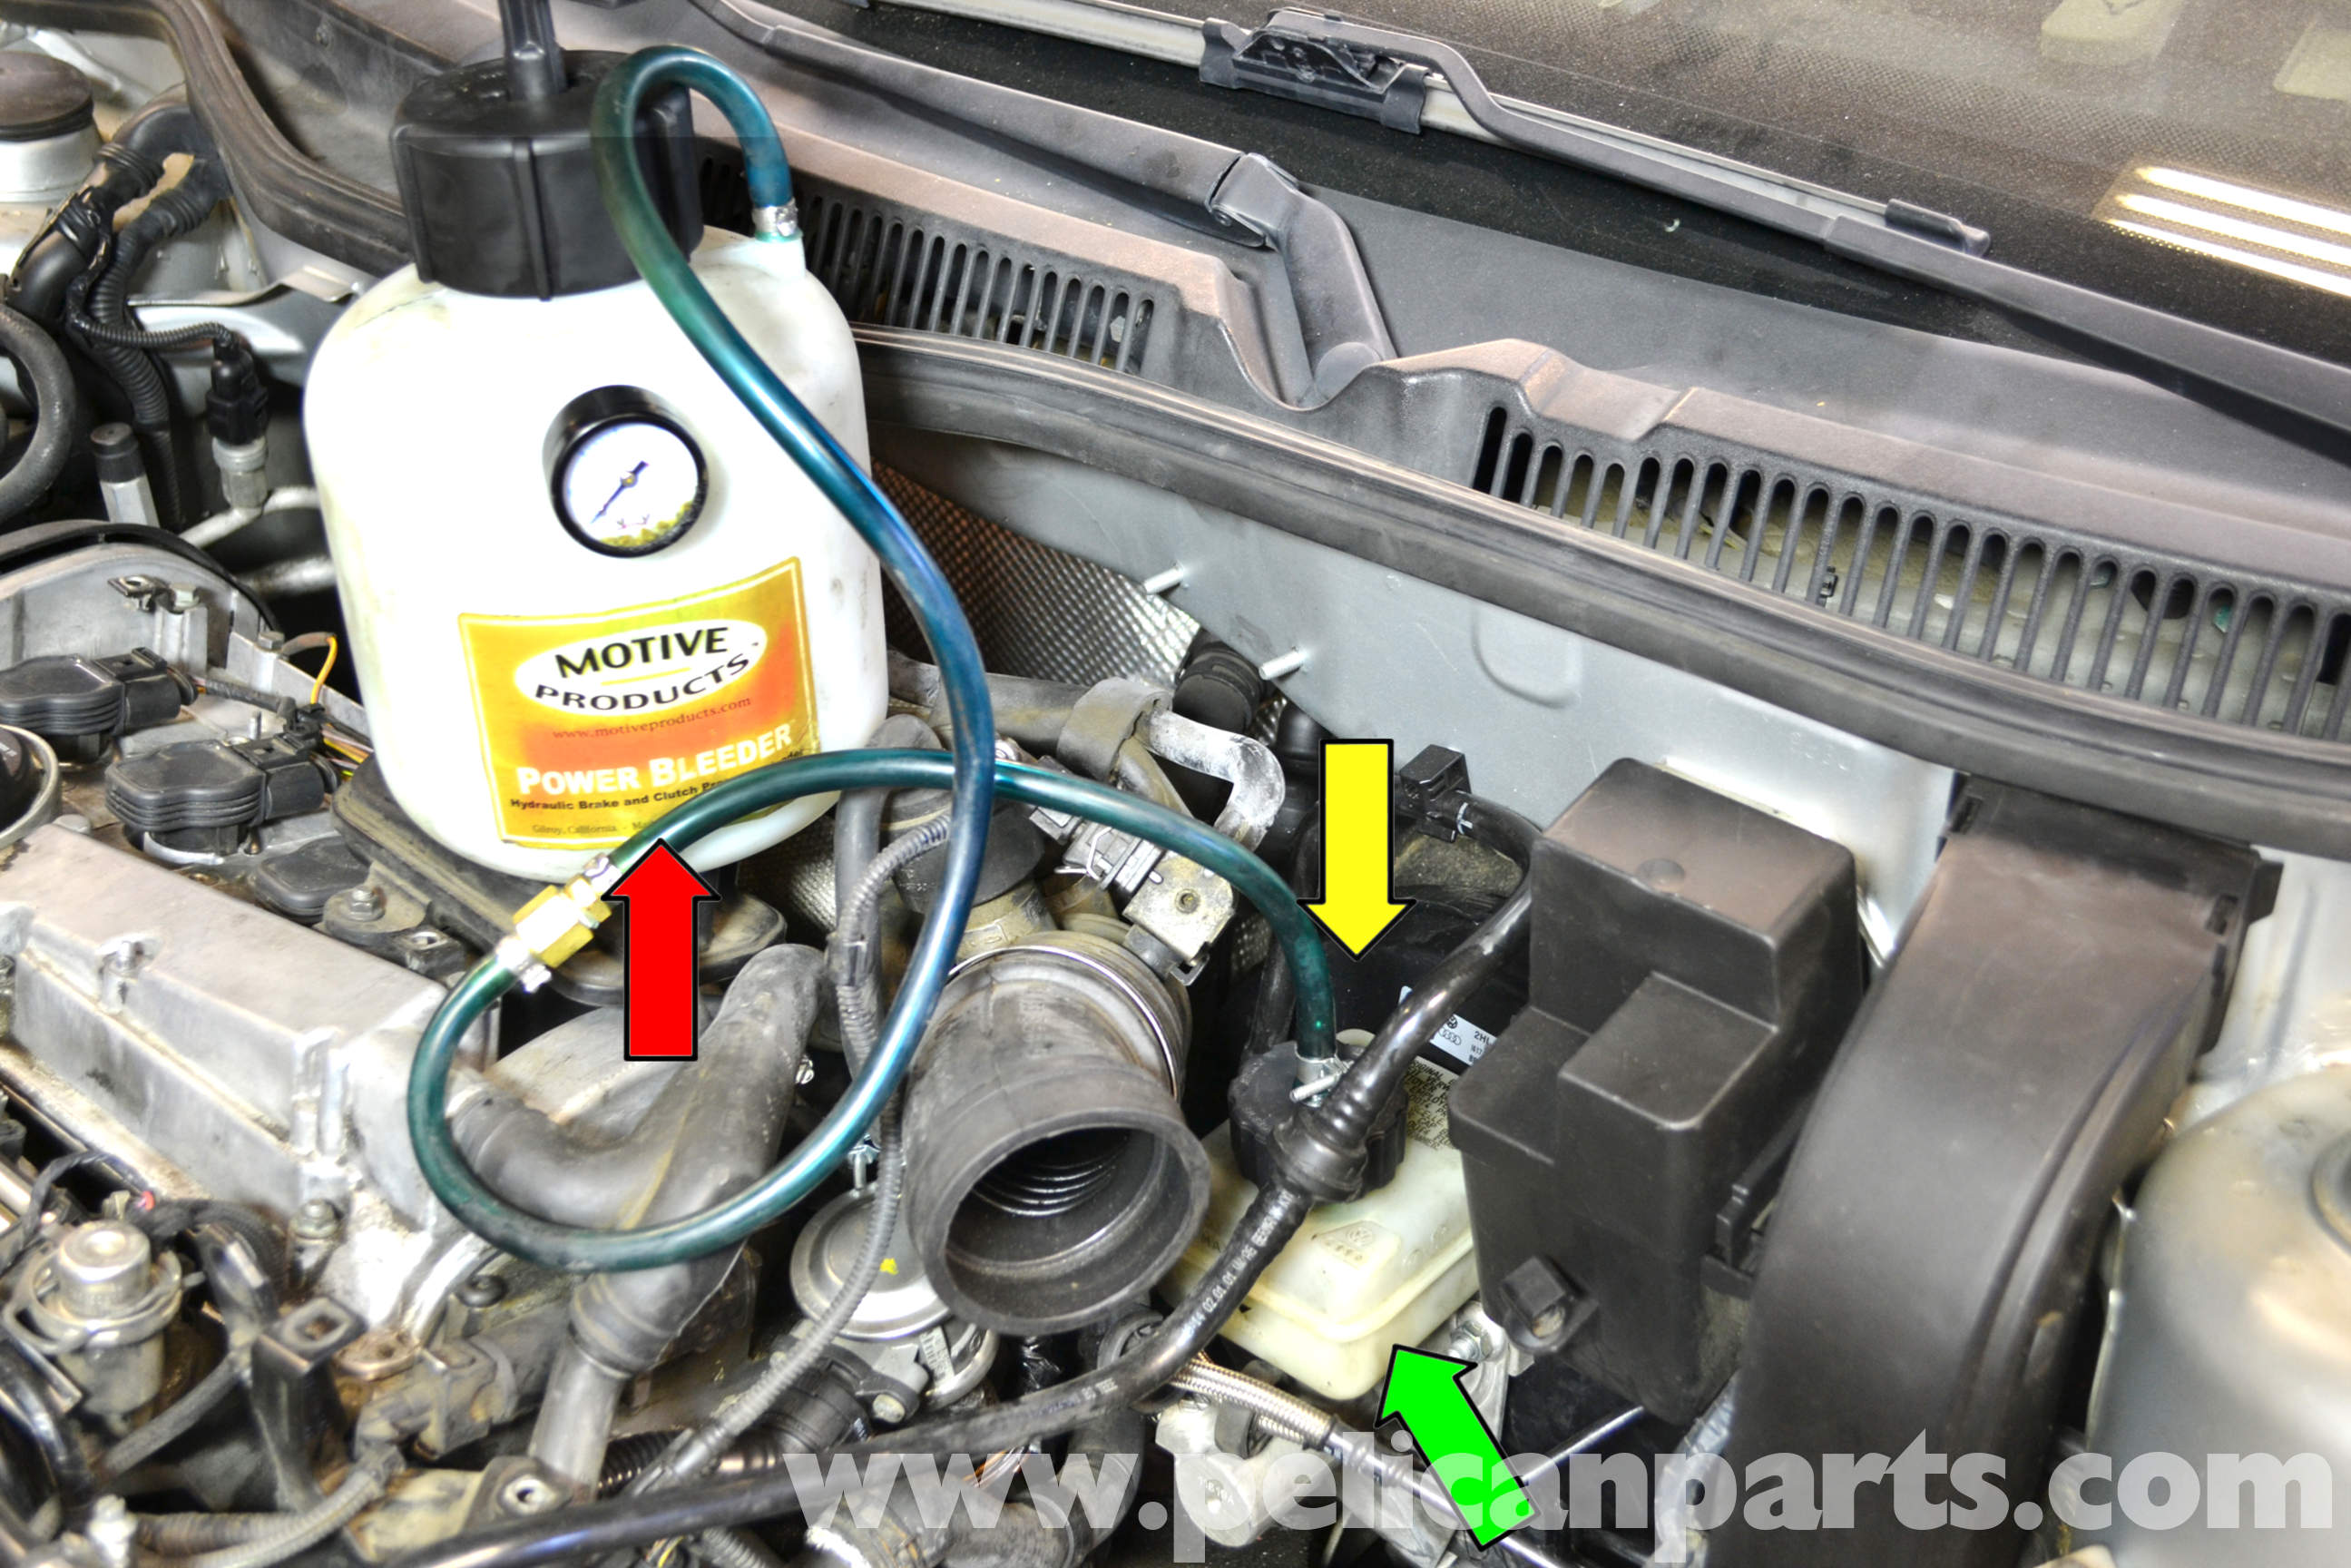 Fault Code P0234 Boost Pressure Reg Limit Exceeded